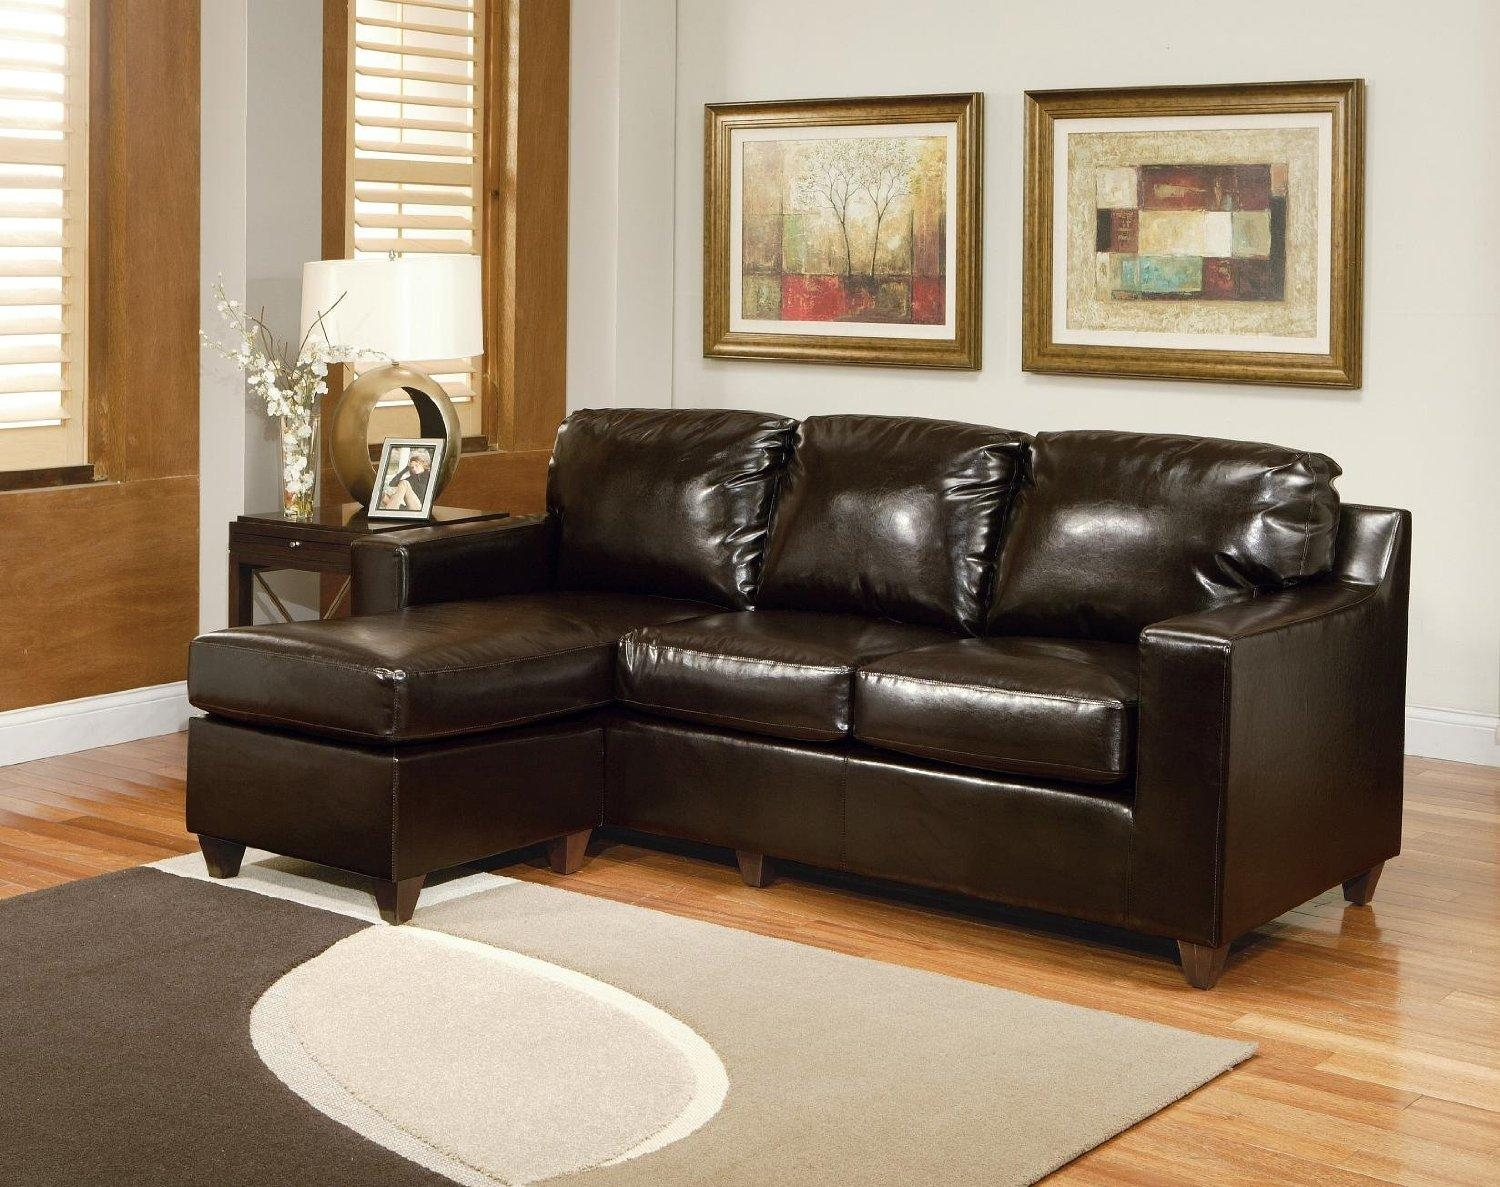 Sectional Sofa For Small Spaces (Image 14 of 20)